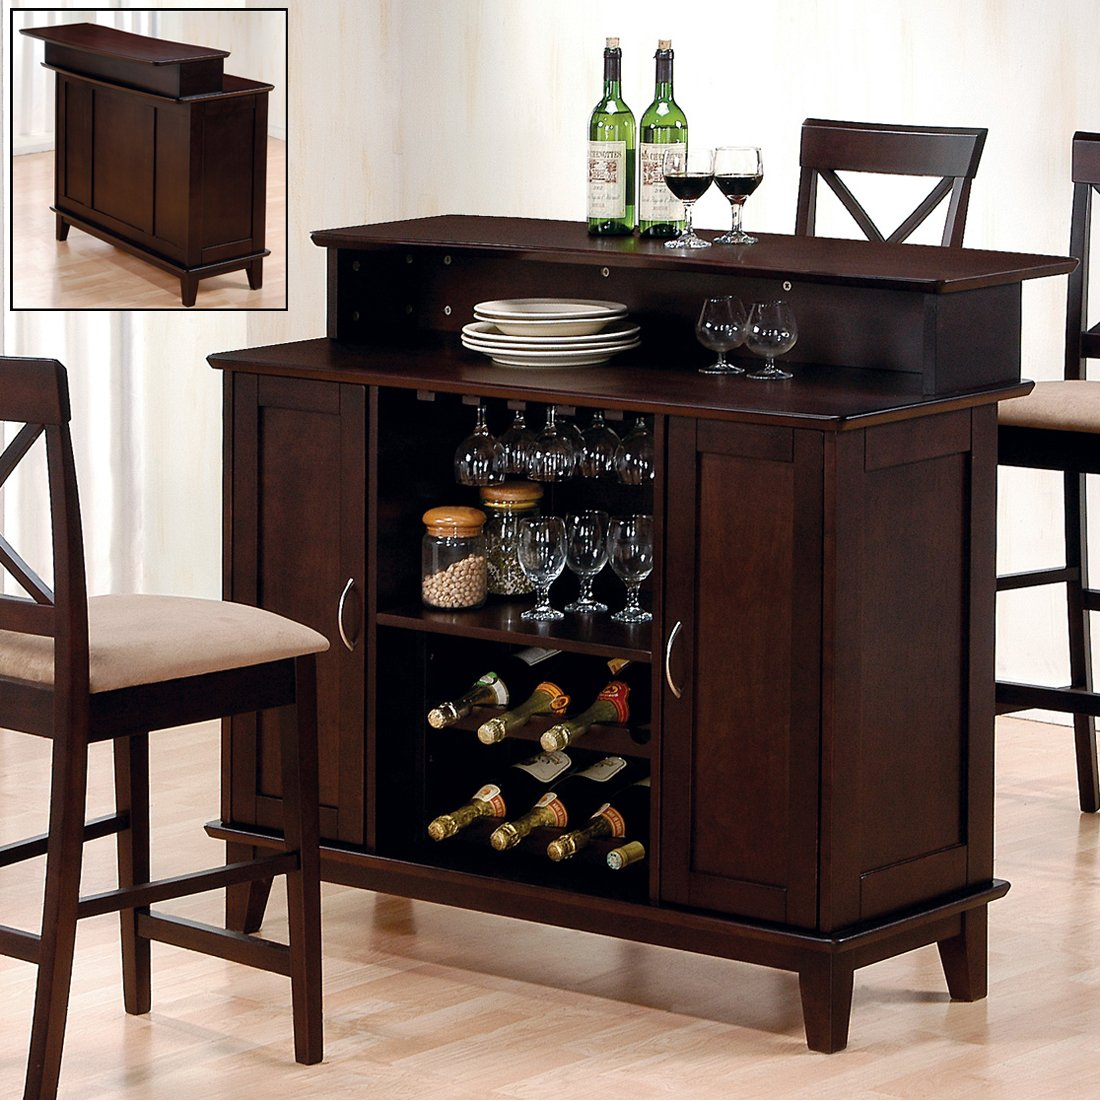 Small bar furniture for apartment best decor things for Bar at home furniture